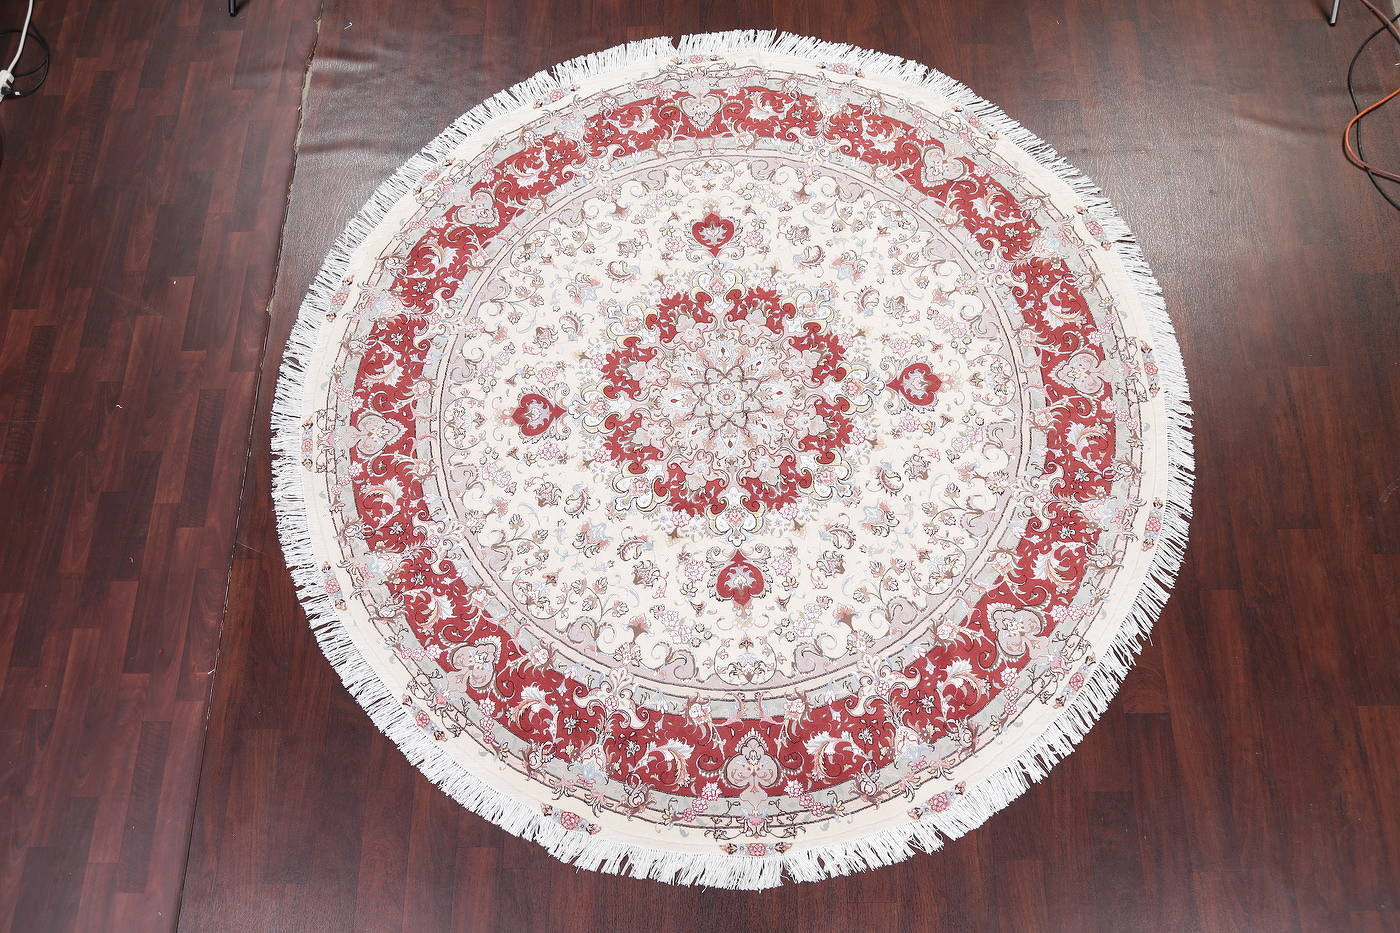 Ivory Floral Tabriz Persian Round Rug 9'x9' image 2